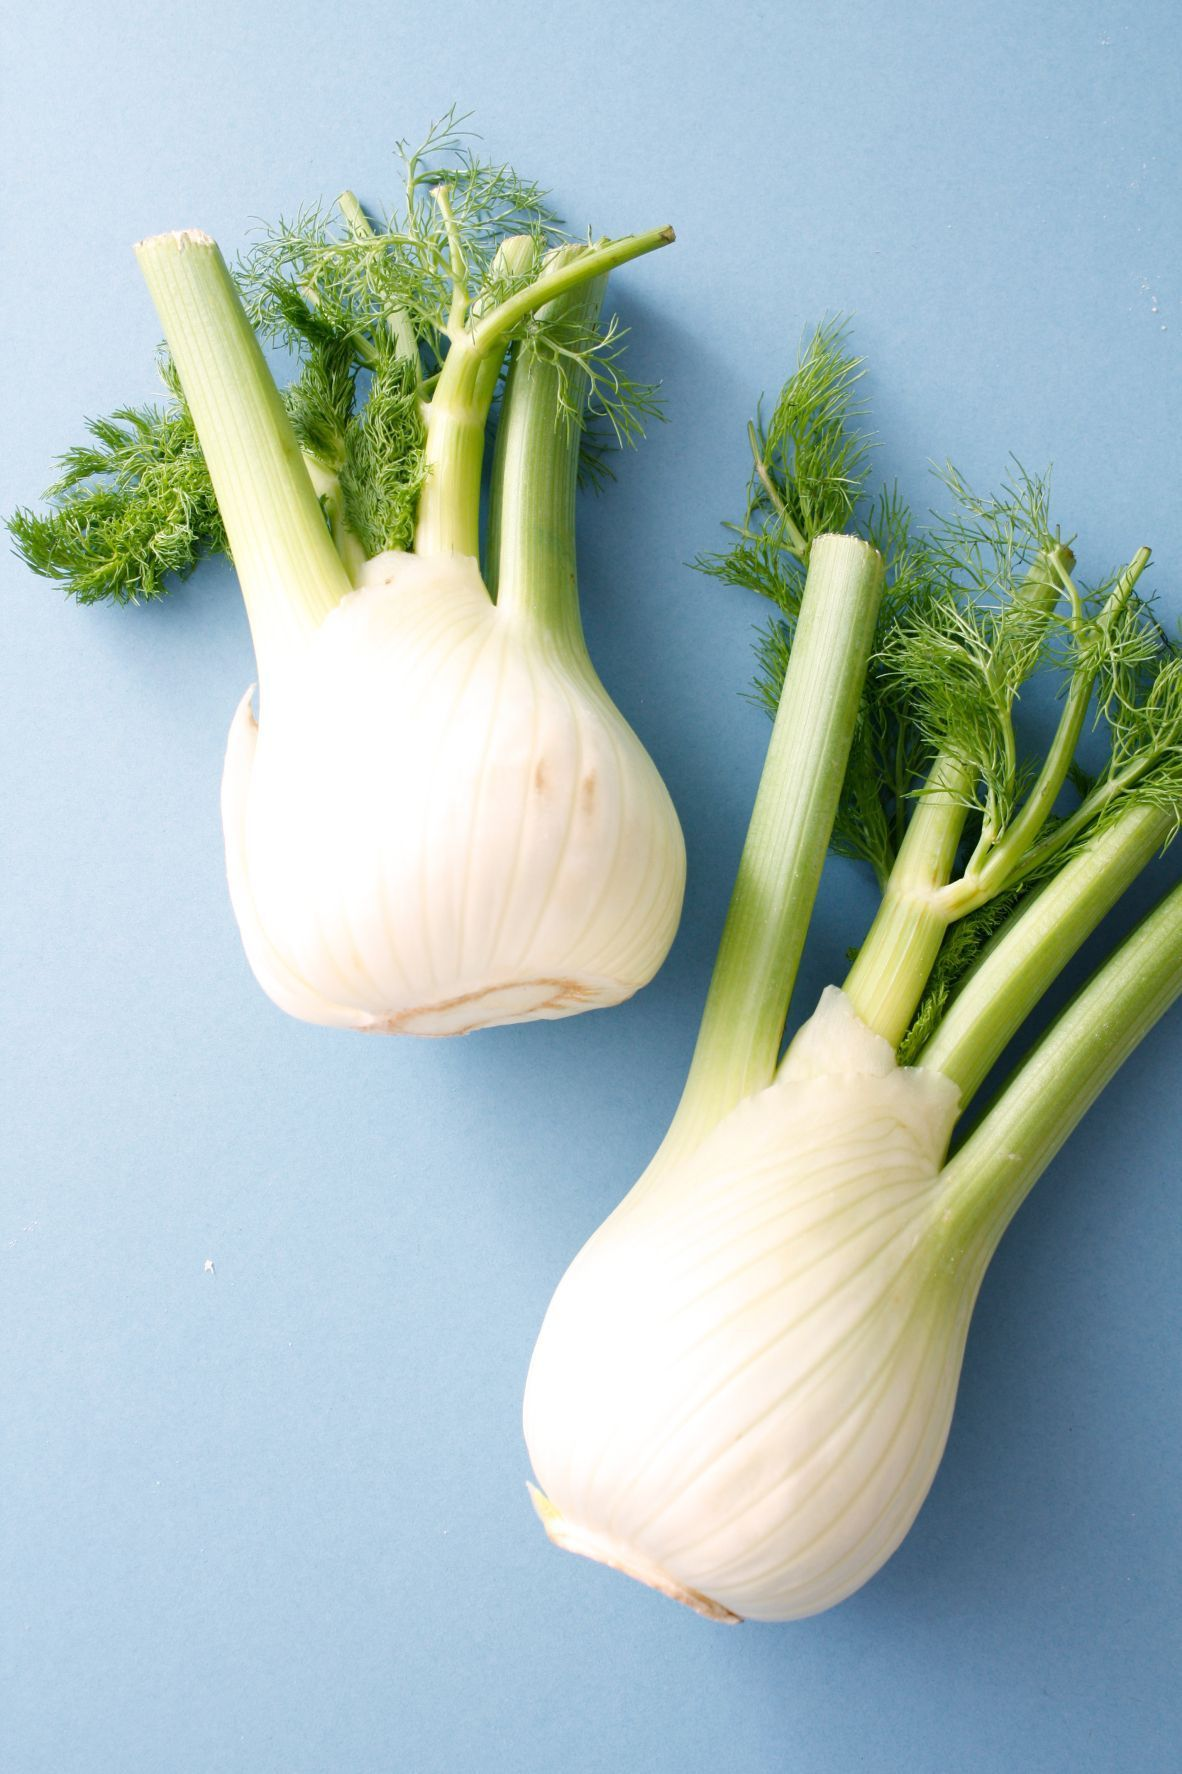 Fennel A Source Of Estrogen And Vitamin C